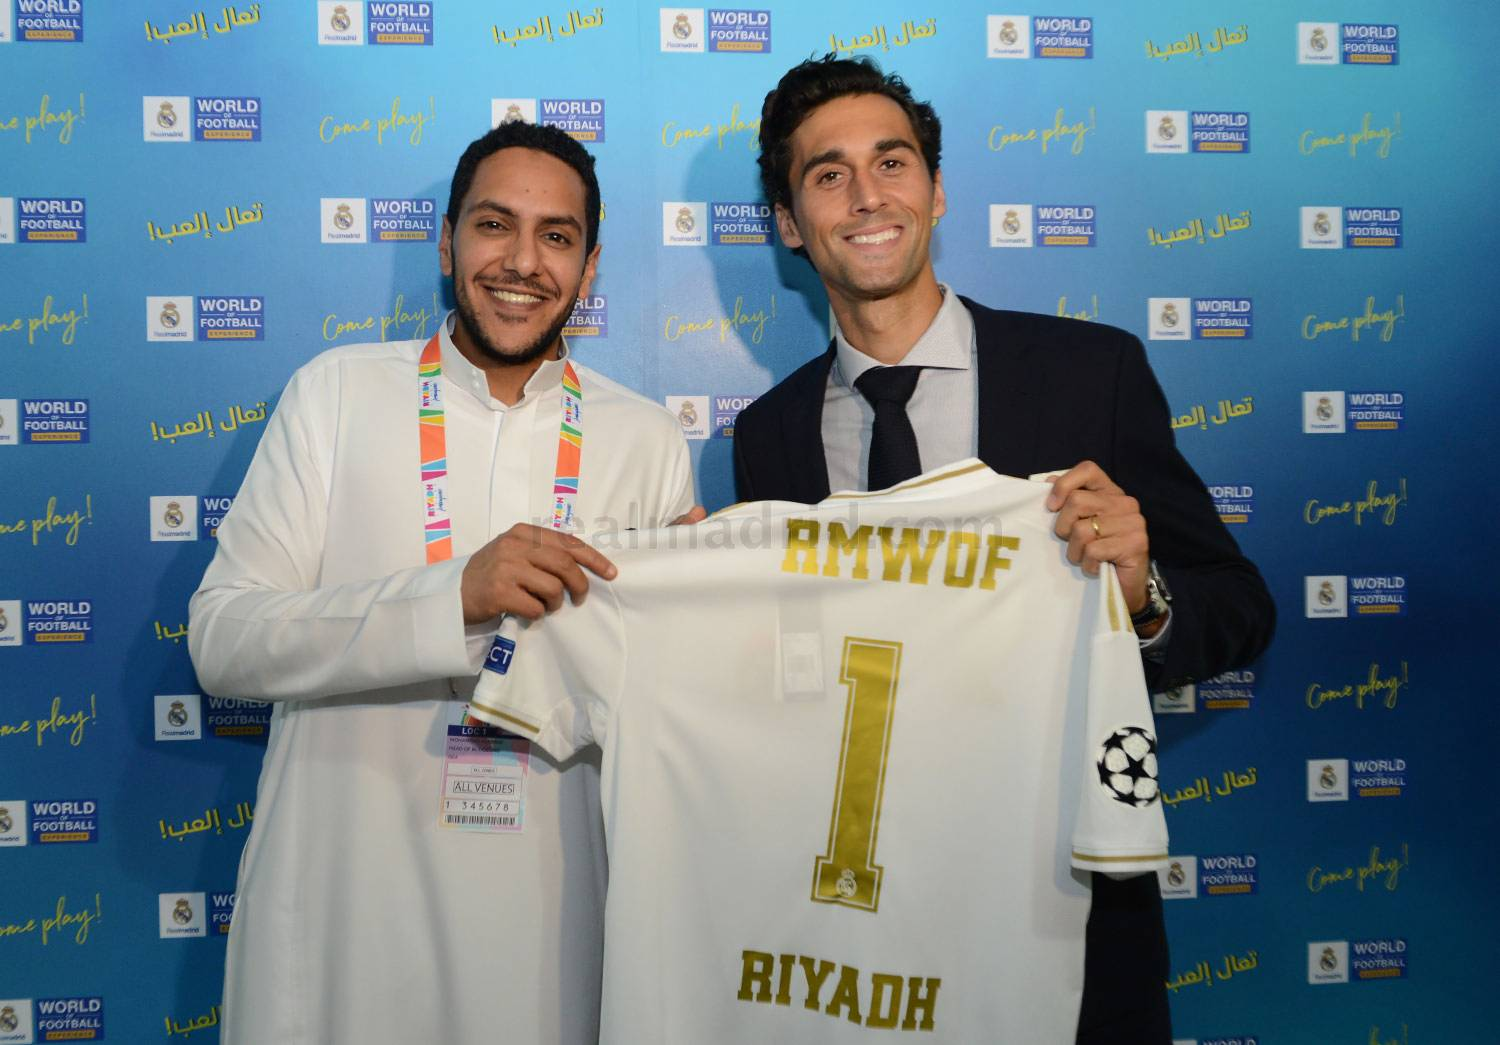 Real Madrid - La exposición 'Real Madrid World of Football Experience' llega a Riad - 25-10-2019